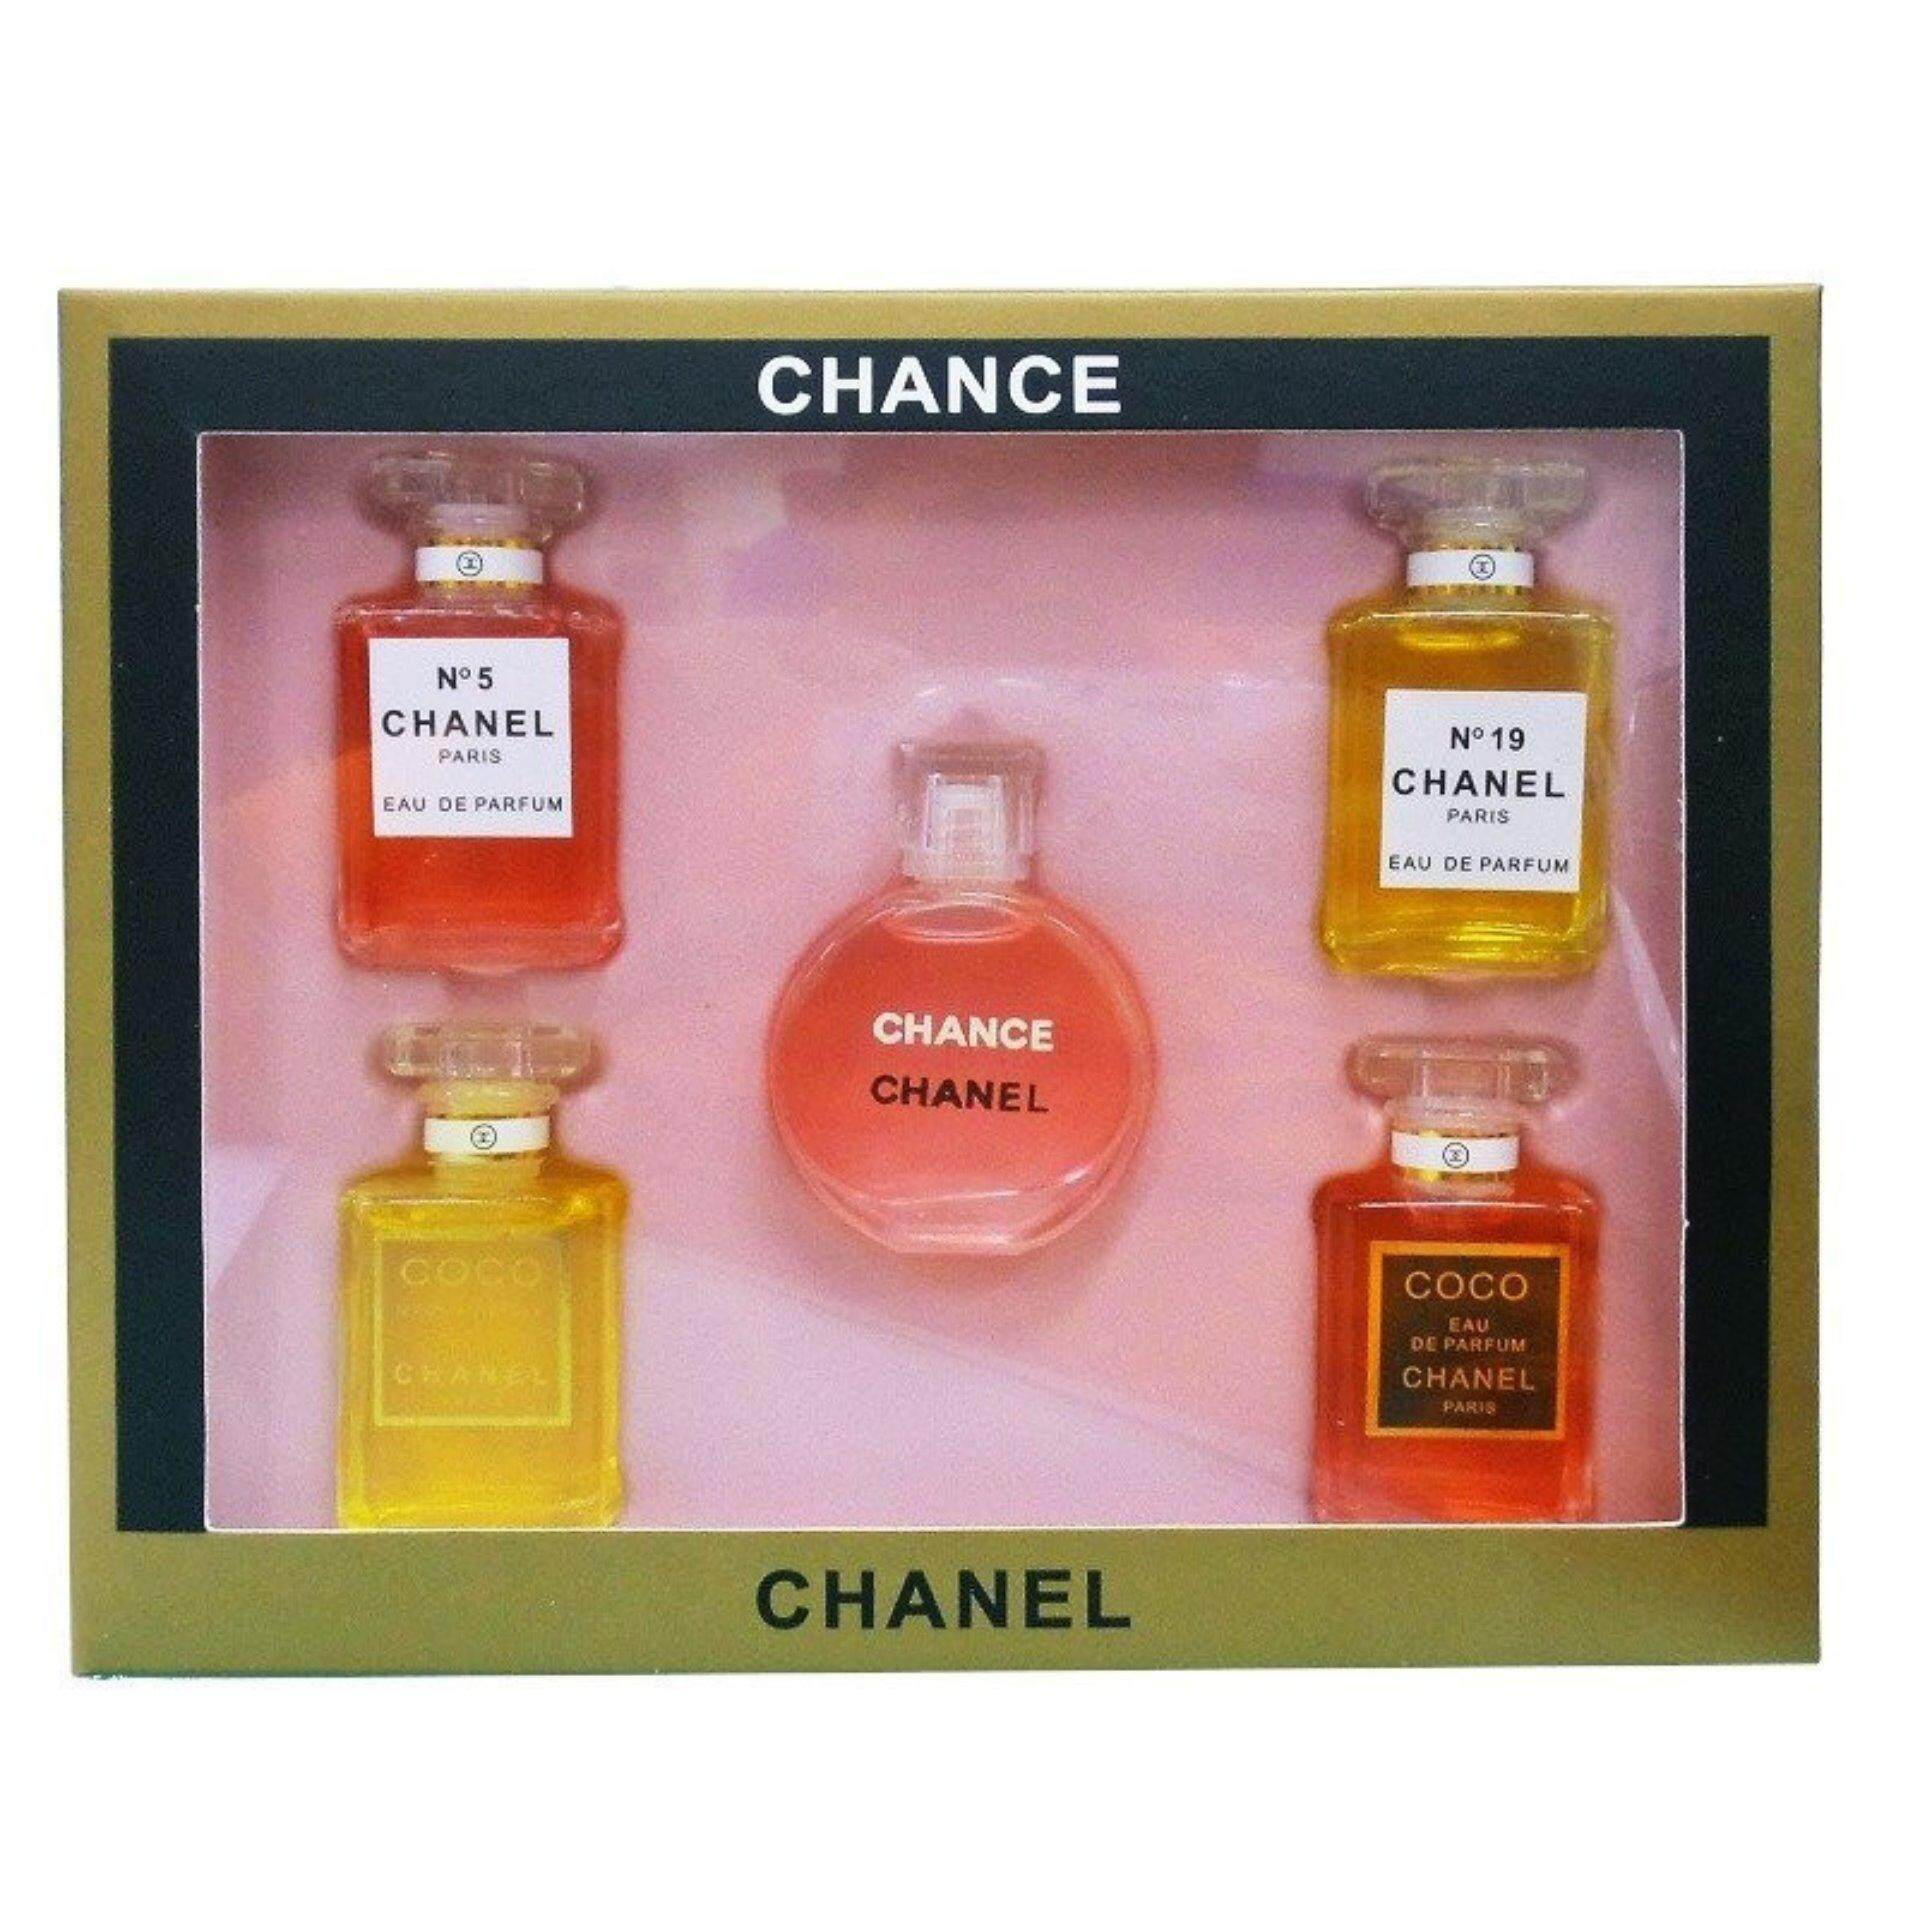 Chanel Travel Perfume Set Of 5 Clearance Sale Below Cost